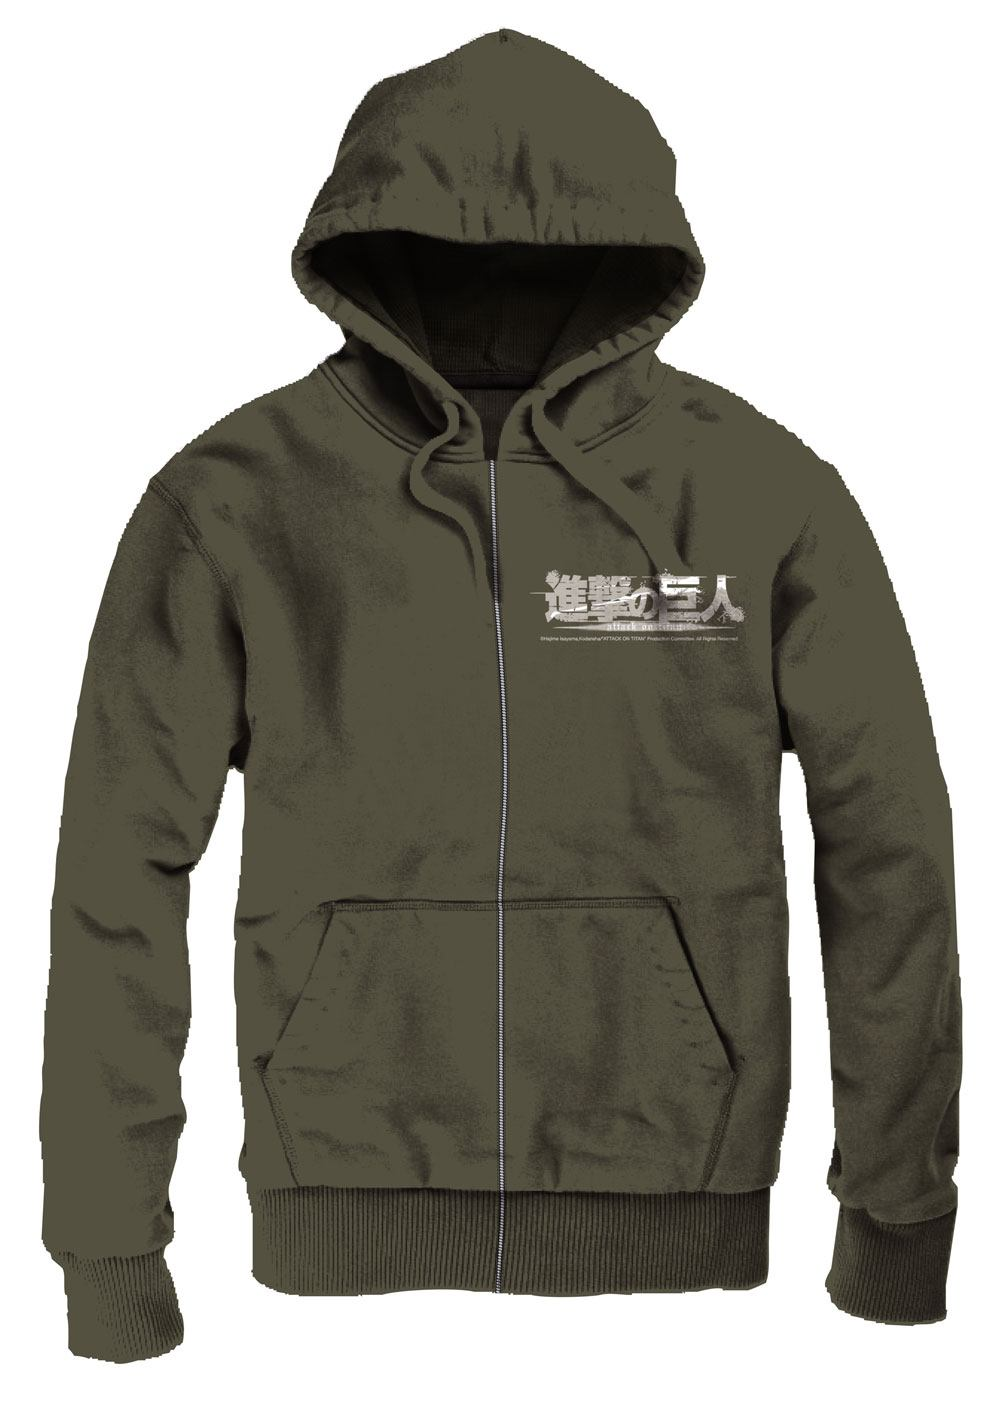 Attack on Titan Hooded Sweater Scout Size XL